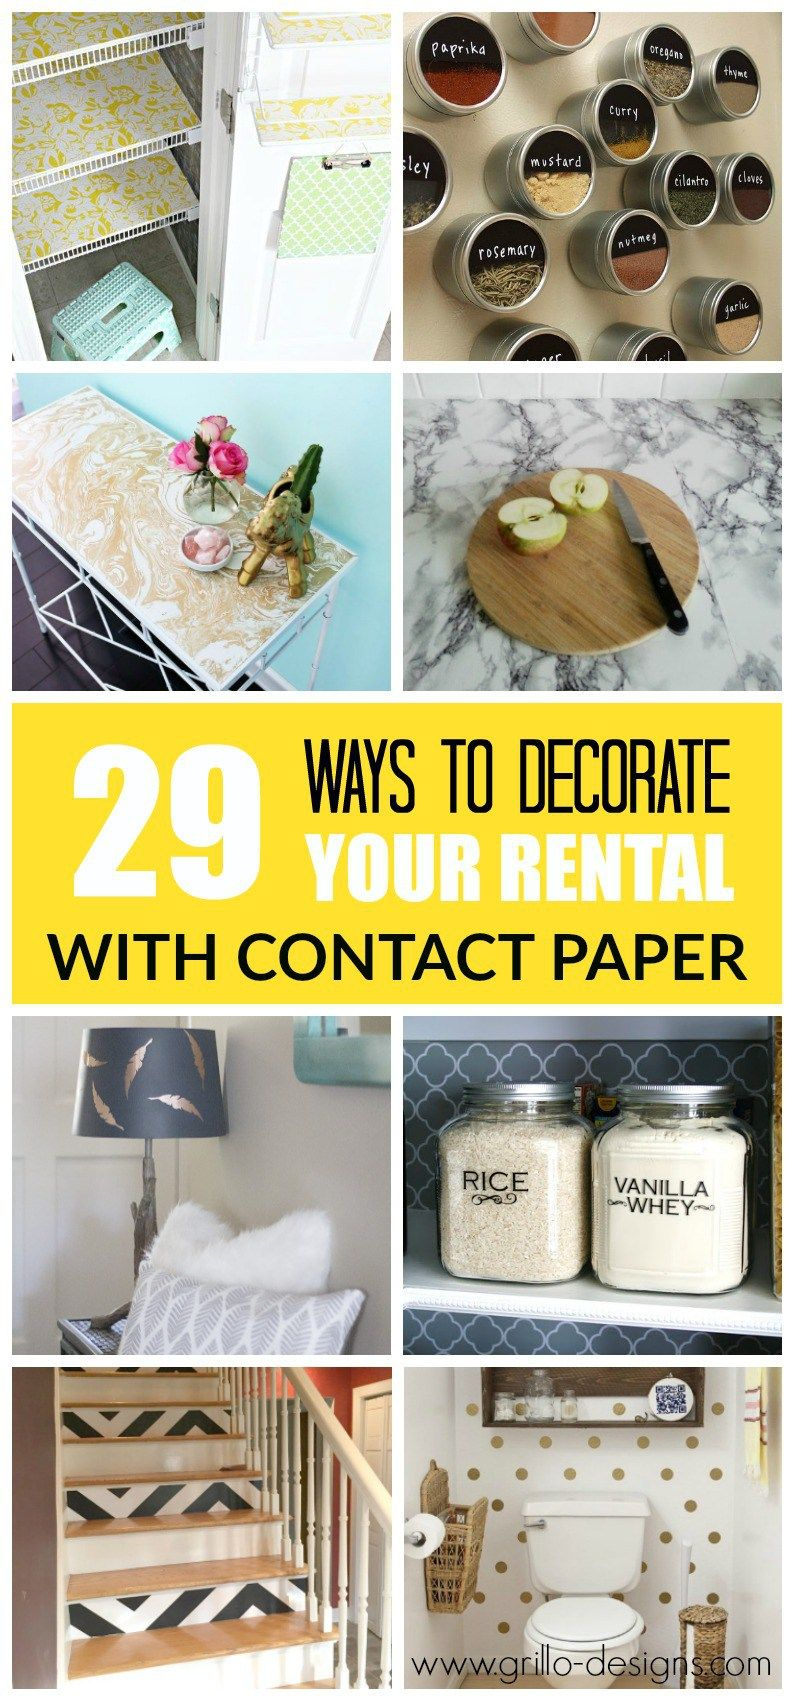 29 ways to decorate your rental with contact paper | contact paper